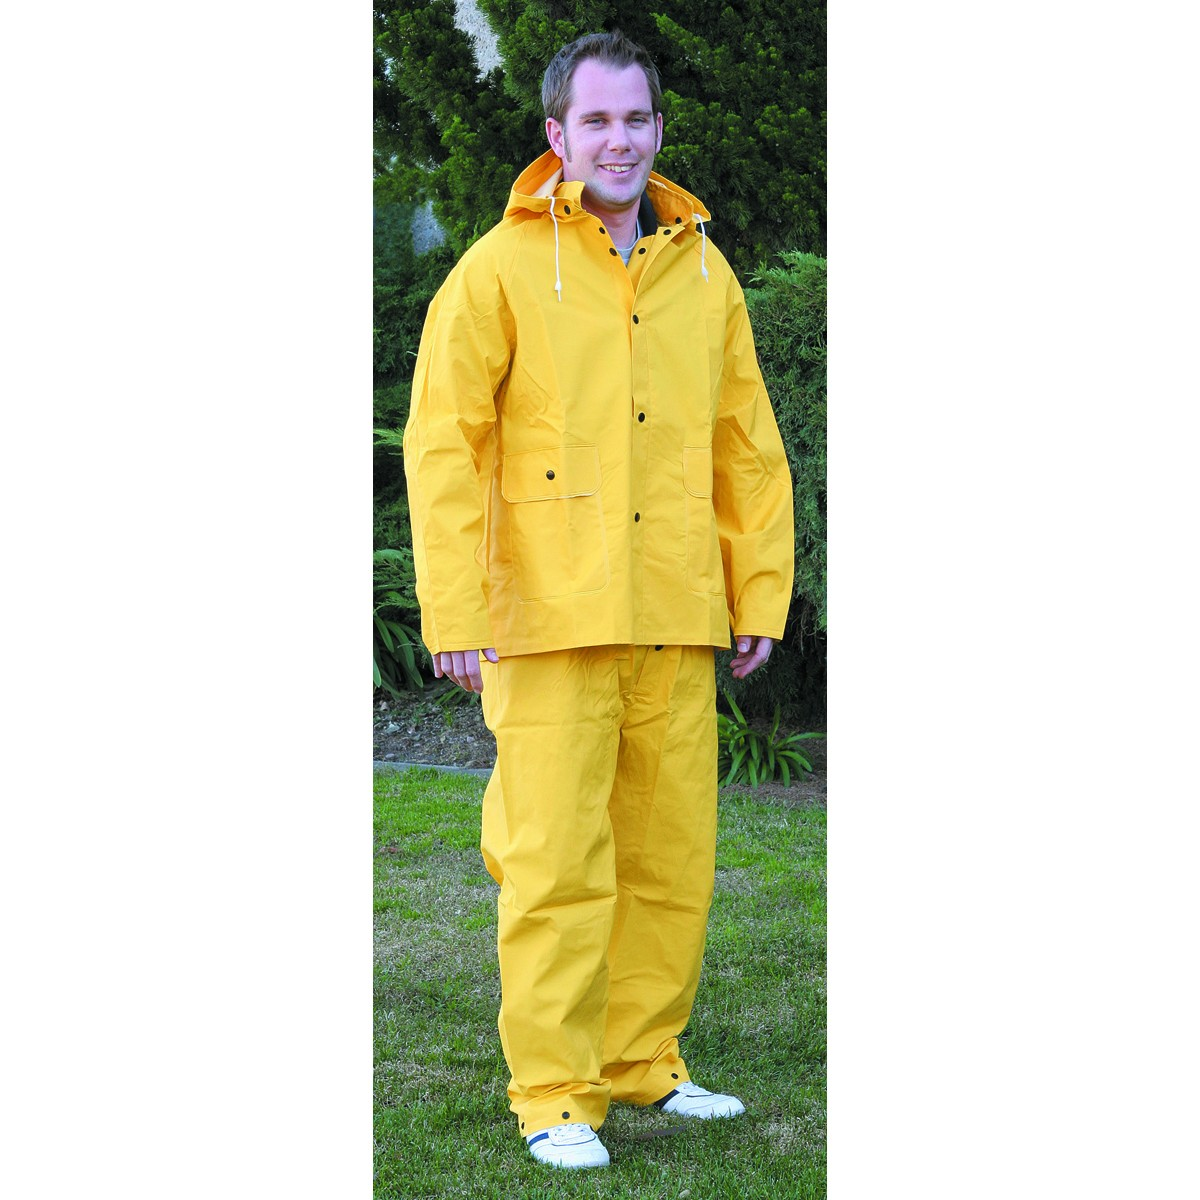 2 Piece Yellow Rain Suit, Medium